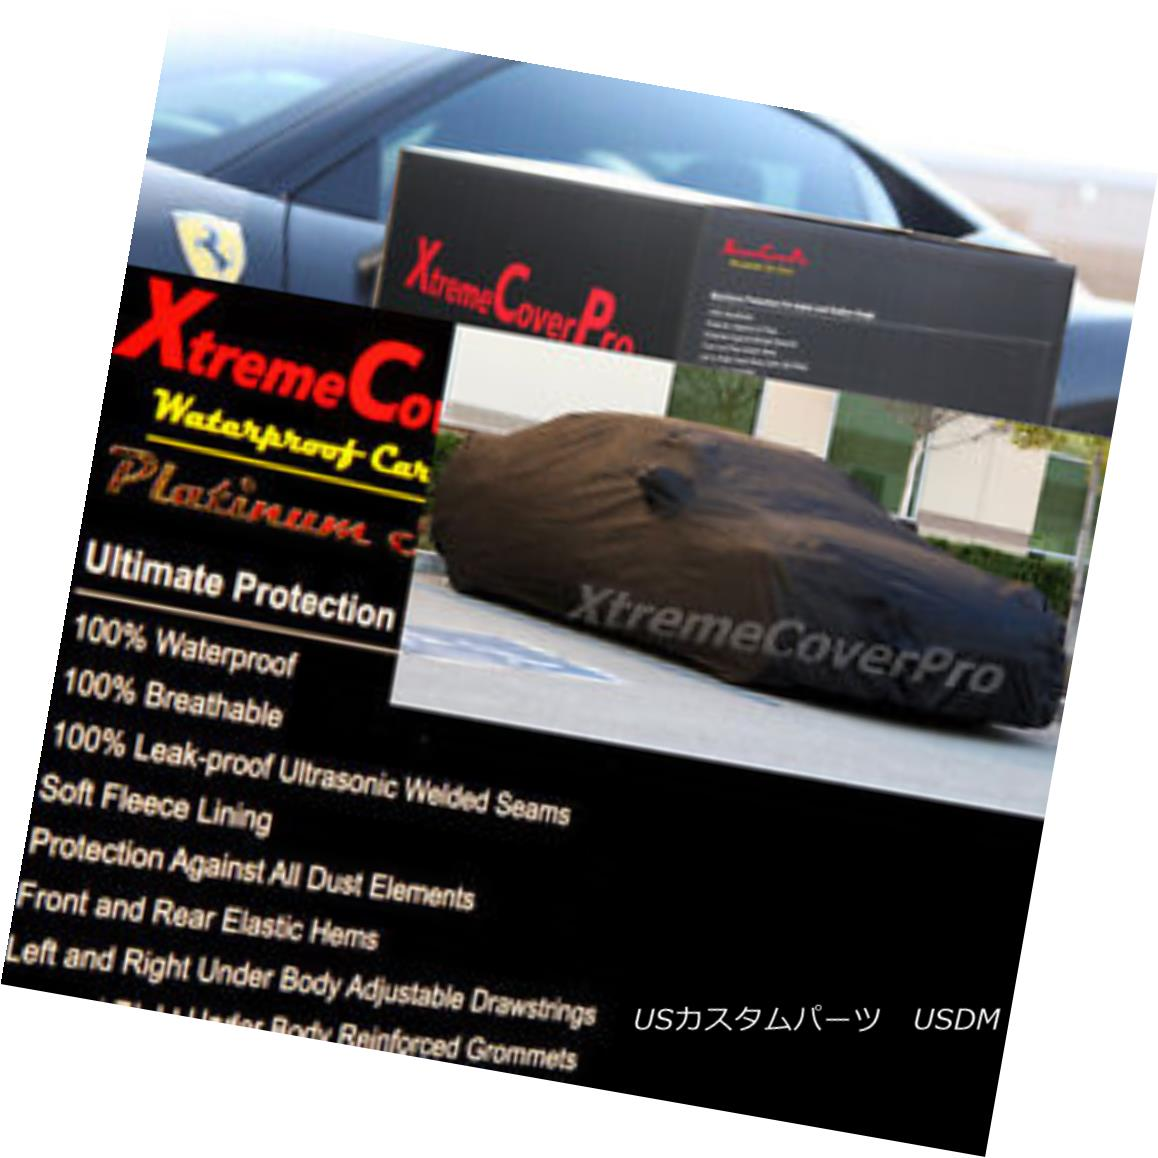 カーカバー 2015 CHEVROLET IMPALA Waterproof Car Cover w/Mirror Pockets - Black 2015 CHEVROLET IMPALAミラーポケット付き防水カーカバー - ブラック